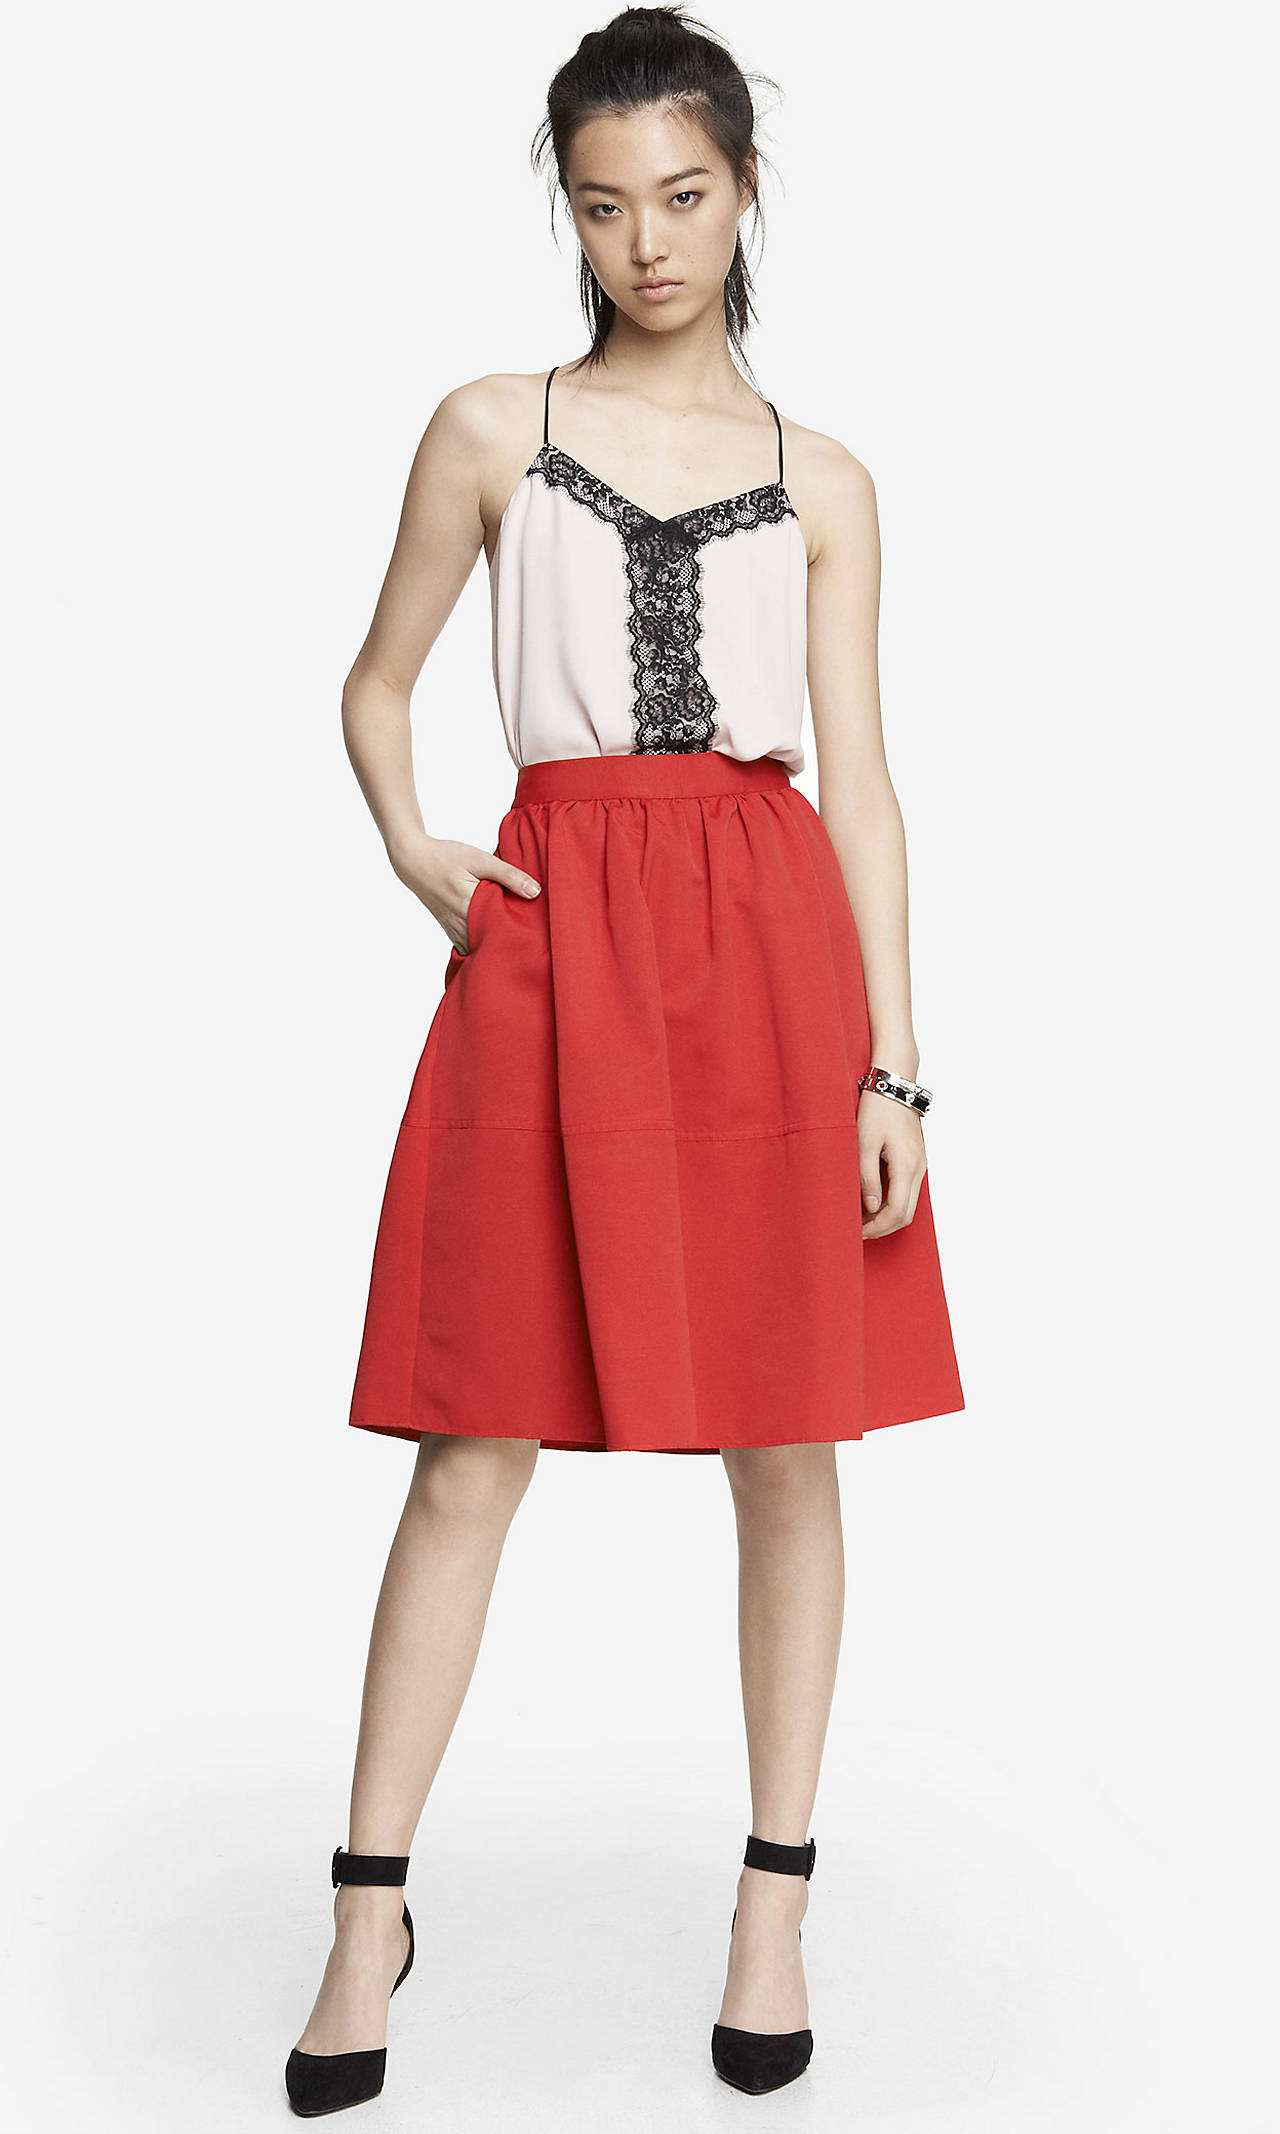 WAIST FULL MIDI SKIRT from EXPRESS